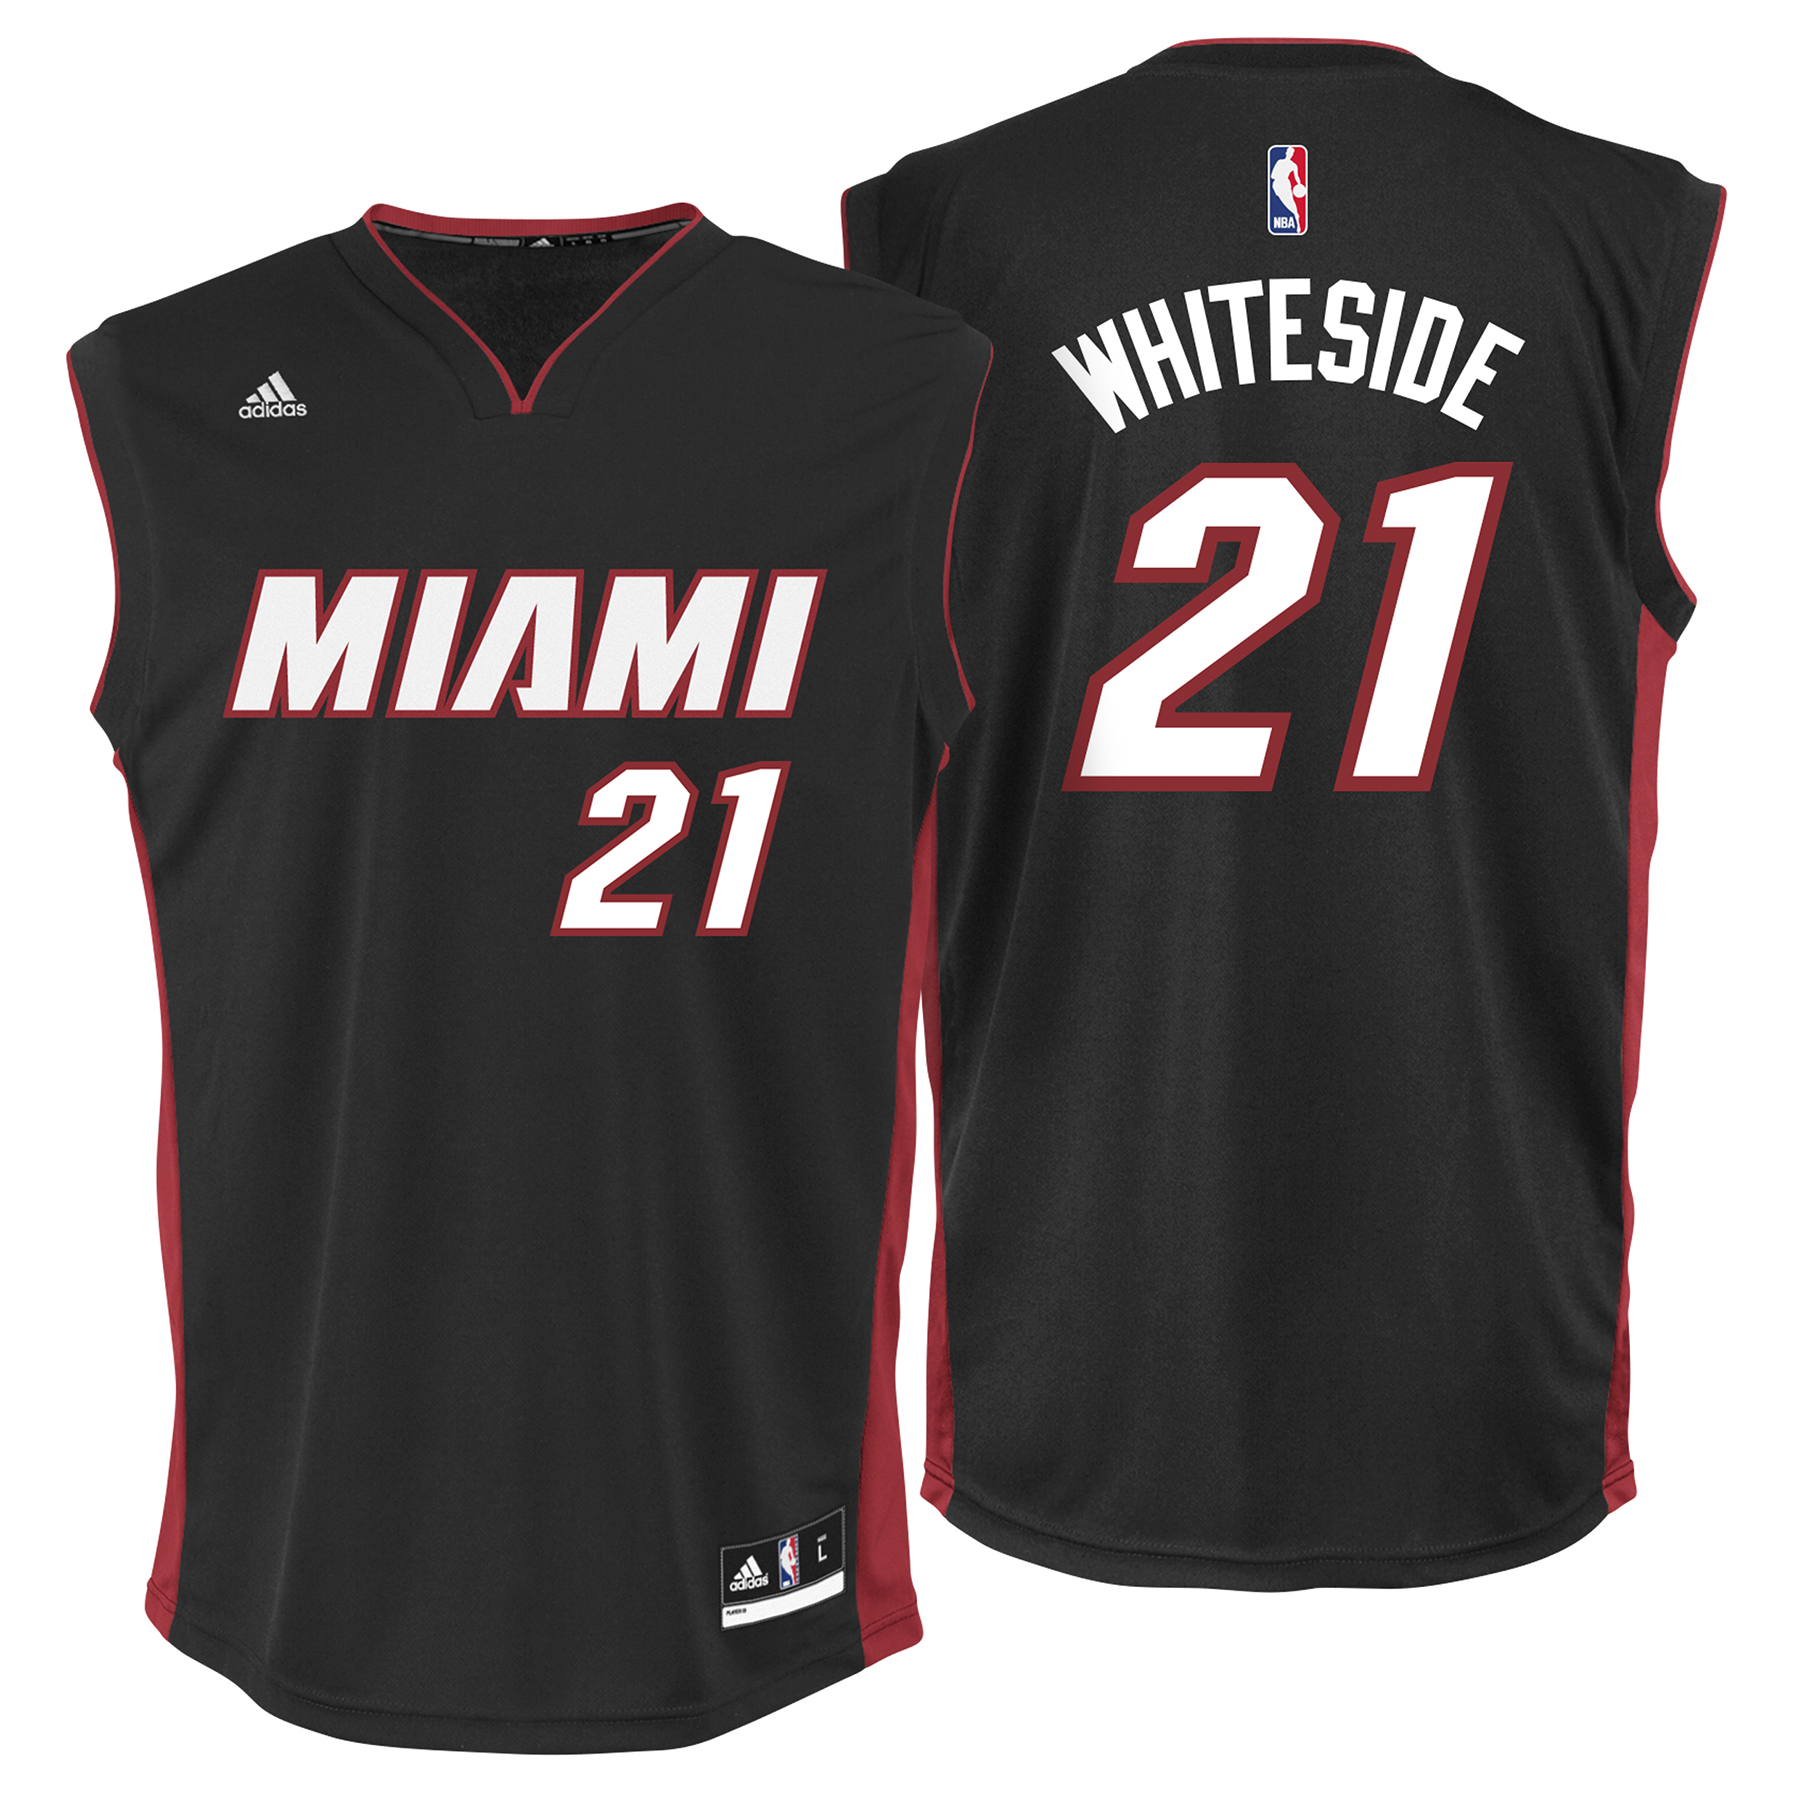 Miami Heat Road Replica Jersey - Hassan Whiteside - Youth